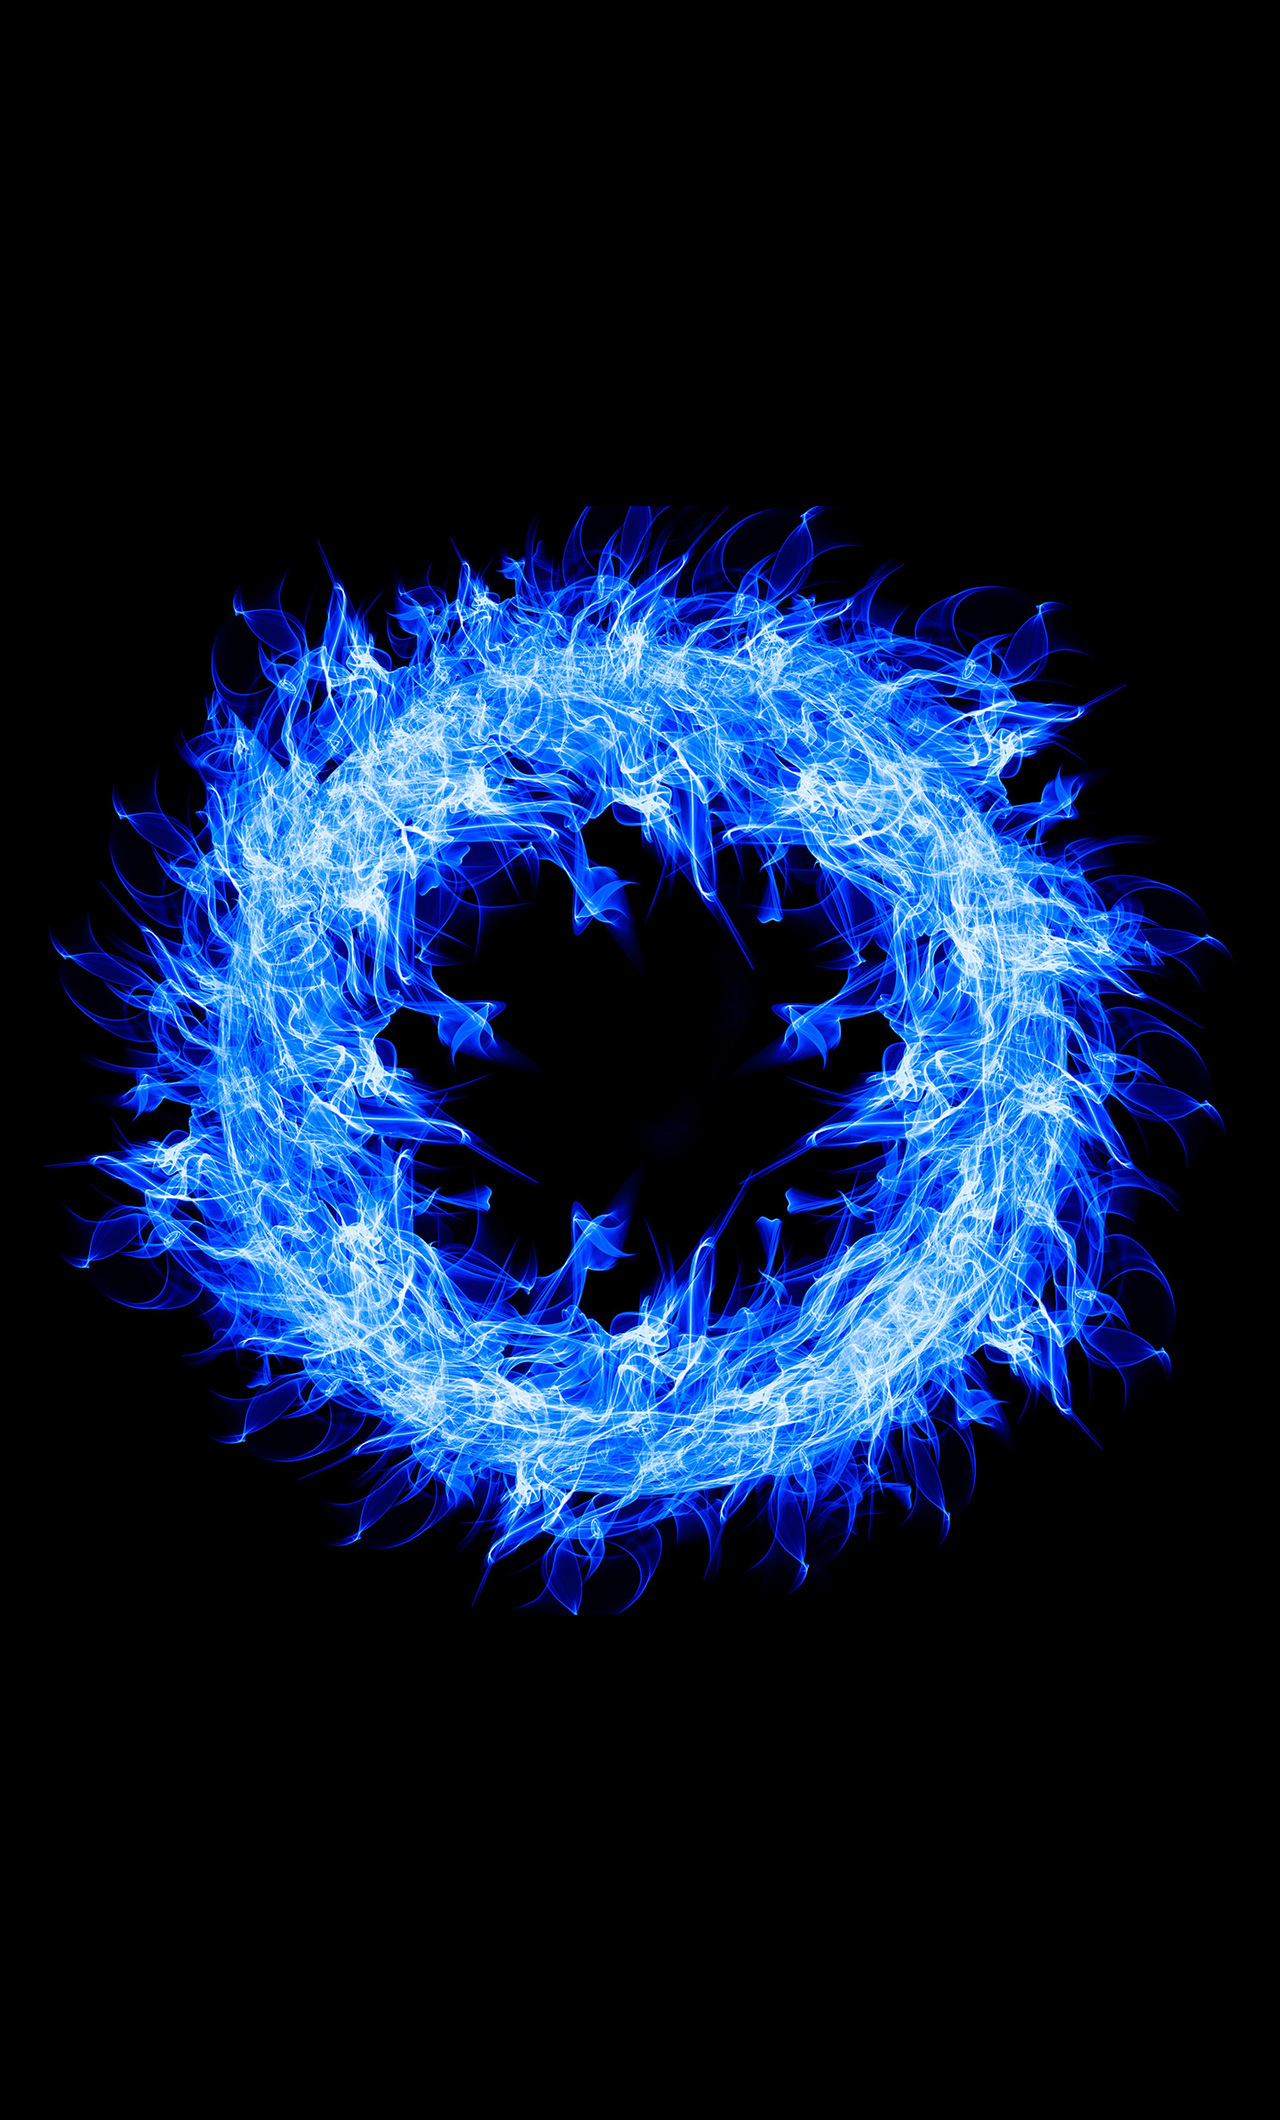 1280x2120 Blue Fire Ring 4k Iphone 6 Hd 4k Wallpapers